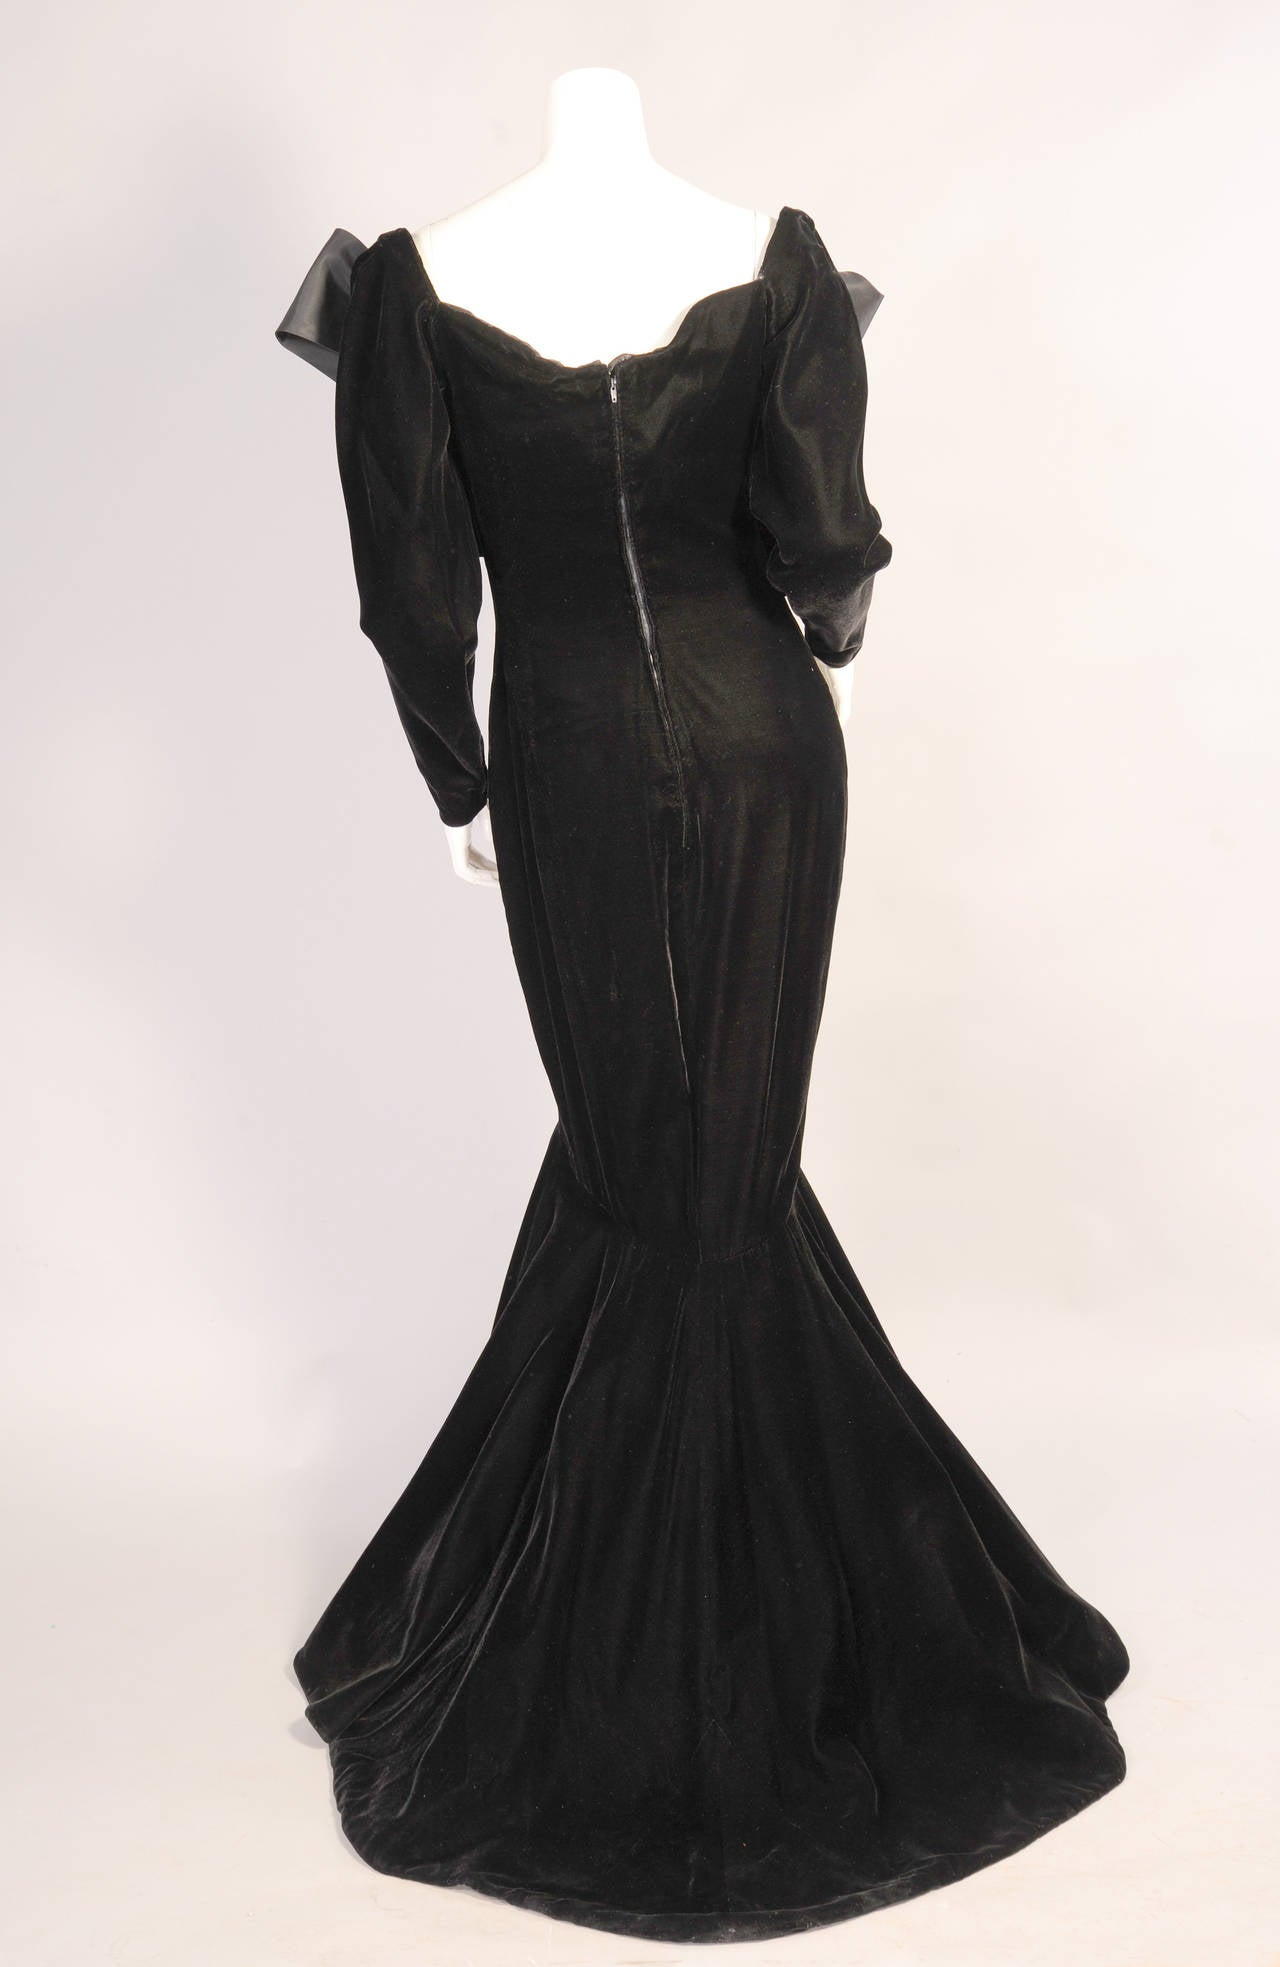 Yves Saint Laurent Haute Couture Black Silk Velvet Mermaid Gown 3